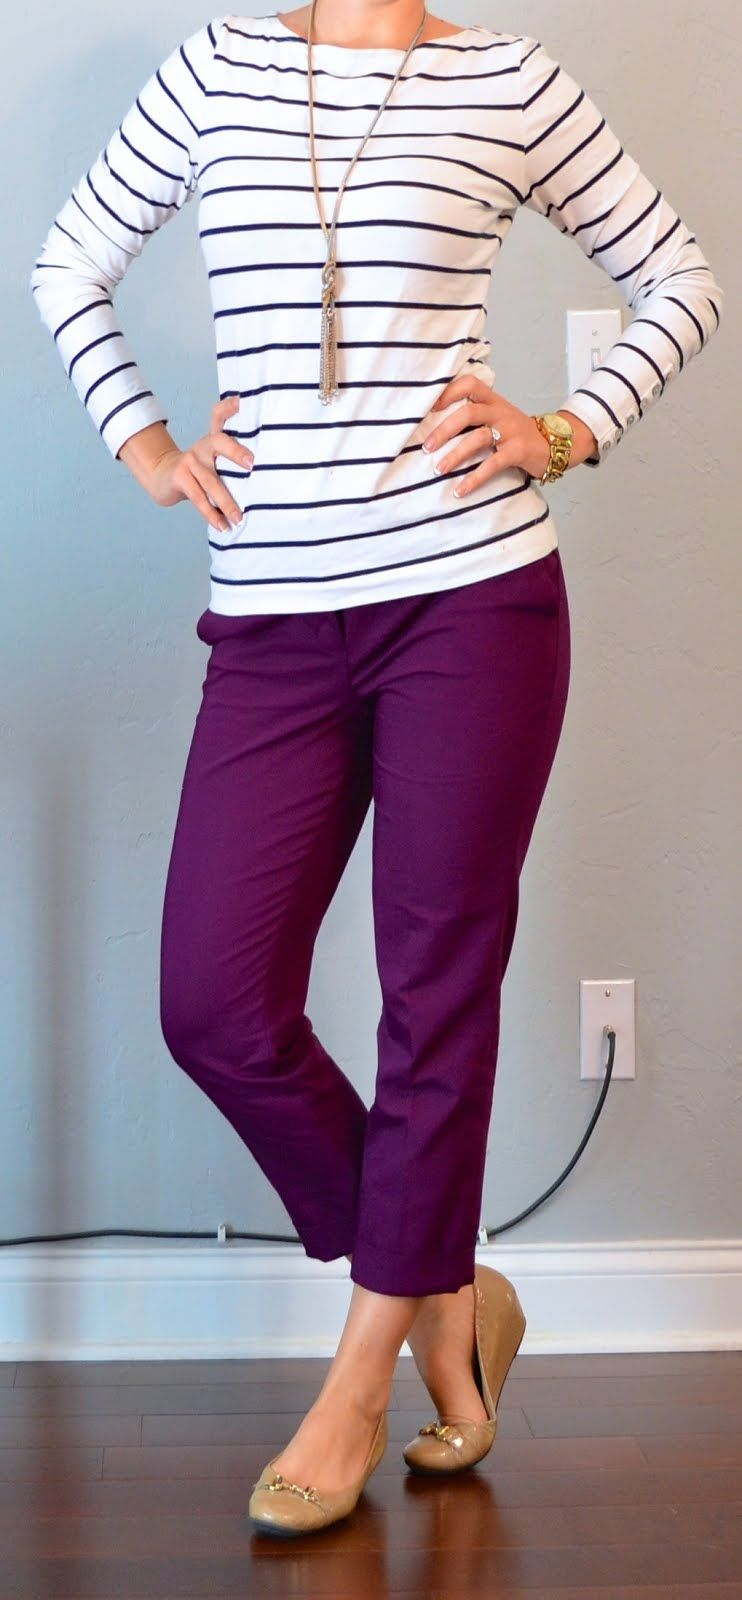 outfit post: striped top, purple cropped pants, nude flats | Outfit Posts